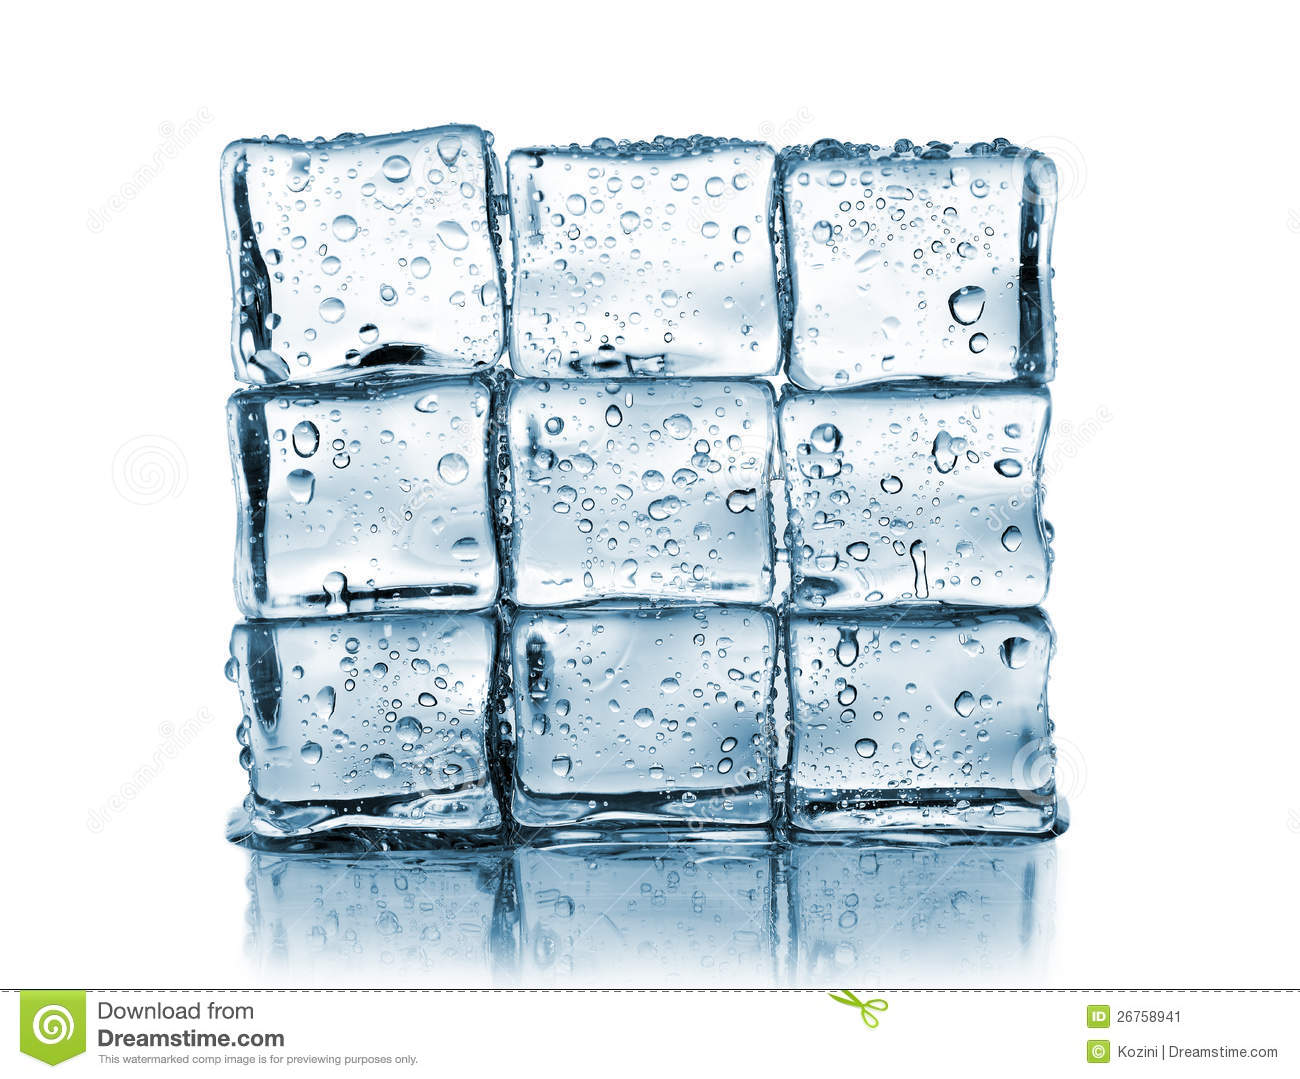 Wall Made of Ice Cubes Stock Image.